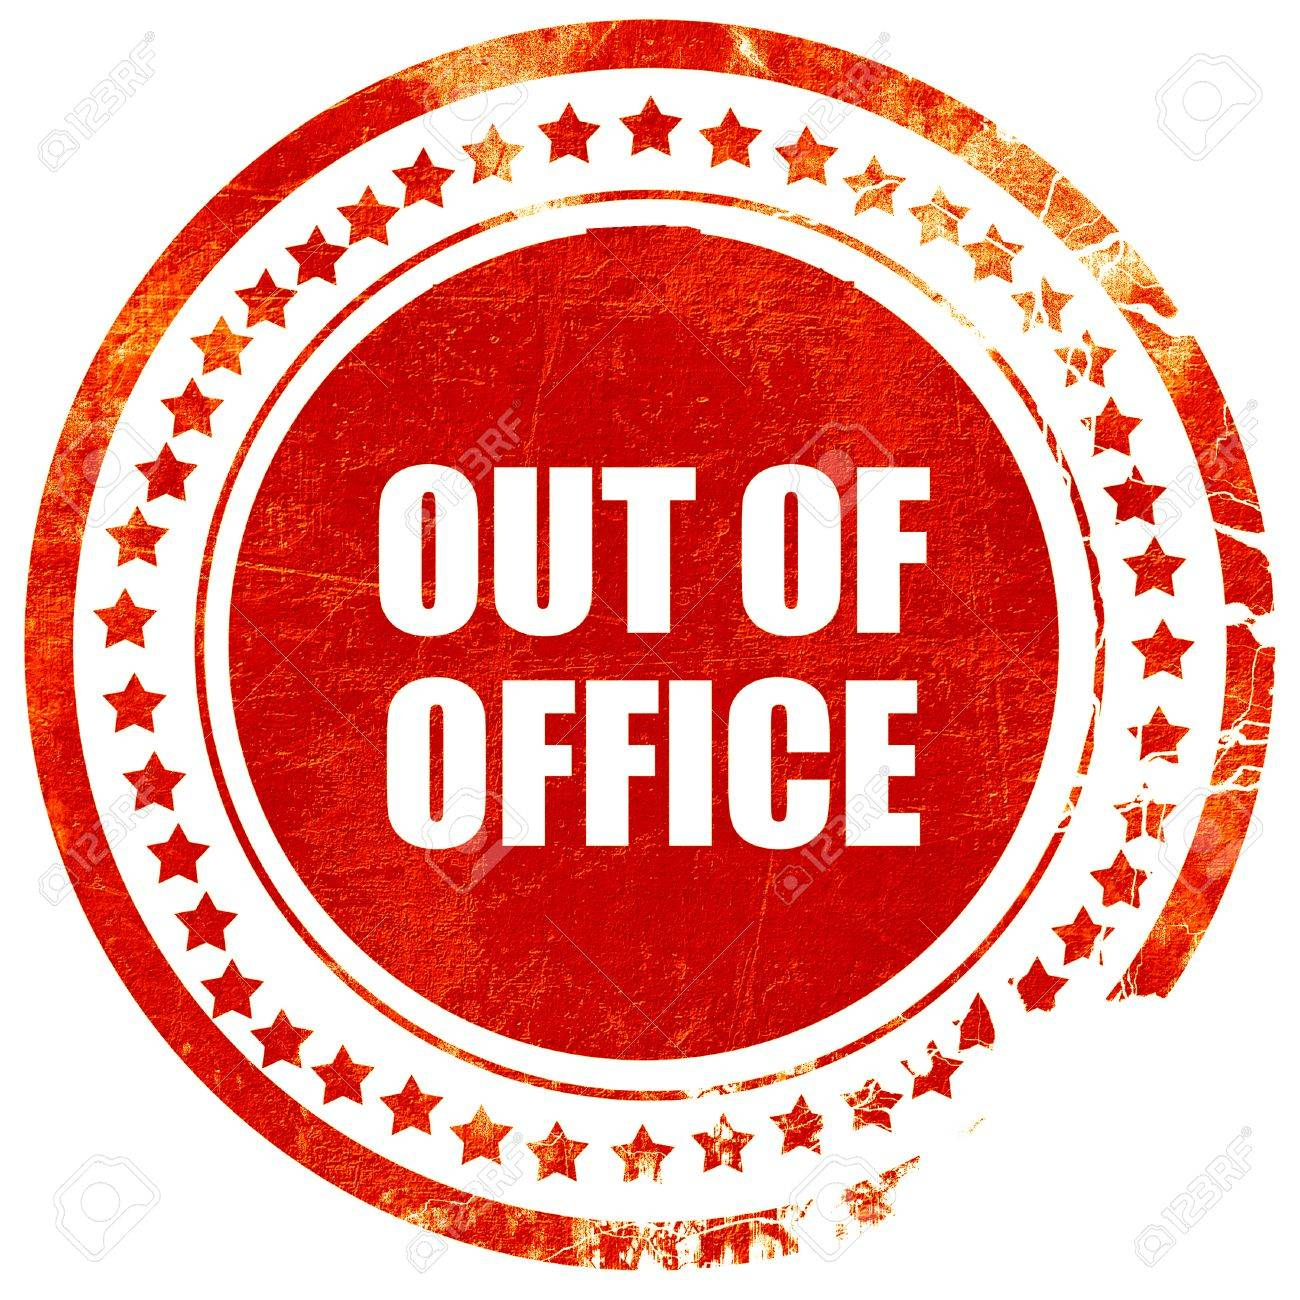 out of office isolated red rubber stamp on a solid white background rh 123rf com out of office clipart free out of office message clipart